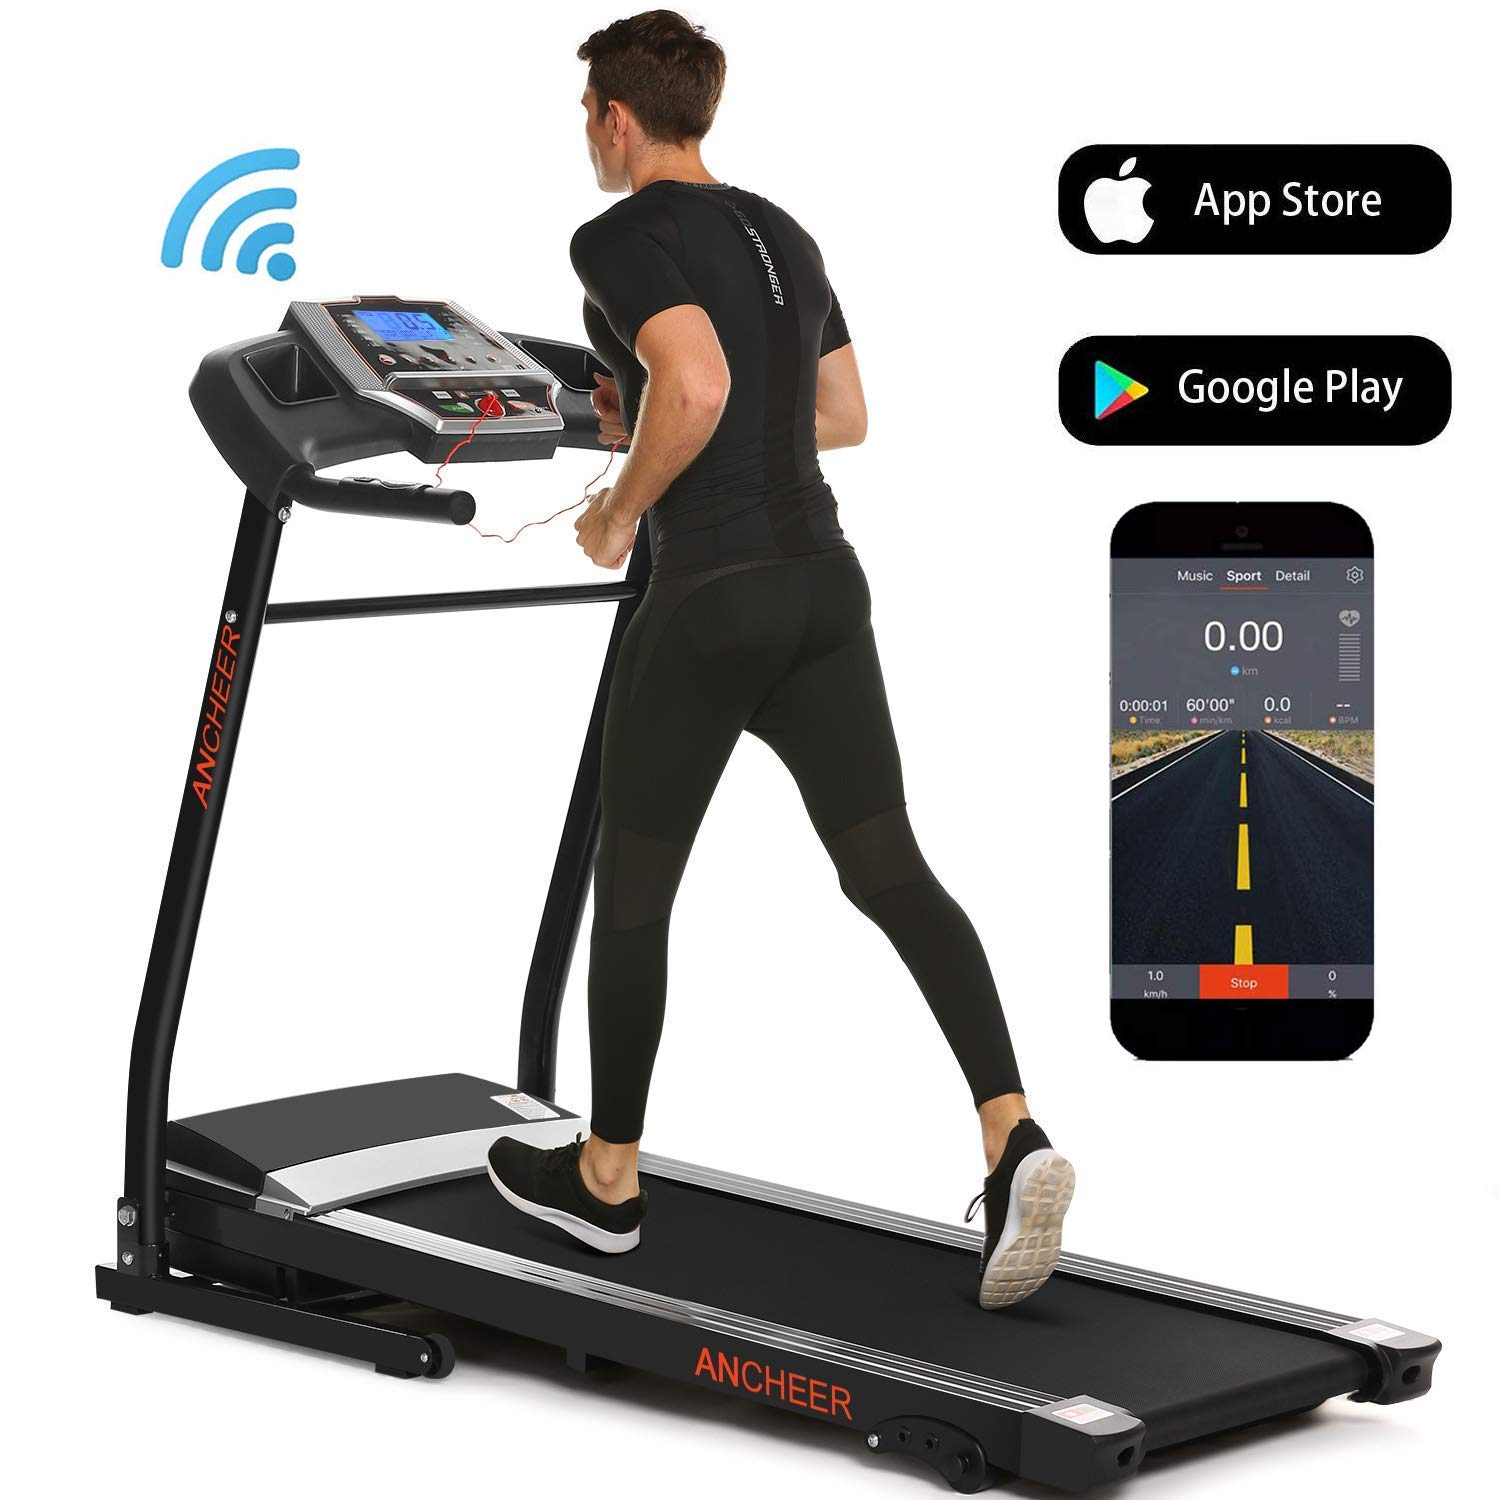 ANCHEER Folding Treadmill – Treadmills for Home Running Jogging Walking Electric Motorized Machine with Incline – Fitness Gym Cardio Workout Equipment with Speakers 12 Preset Programs, APP Control